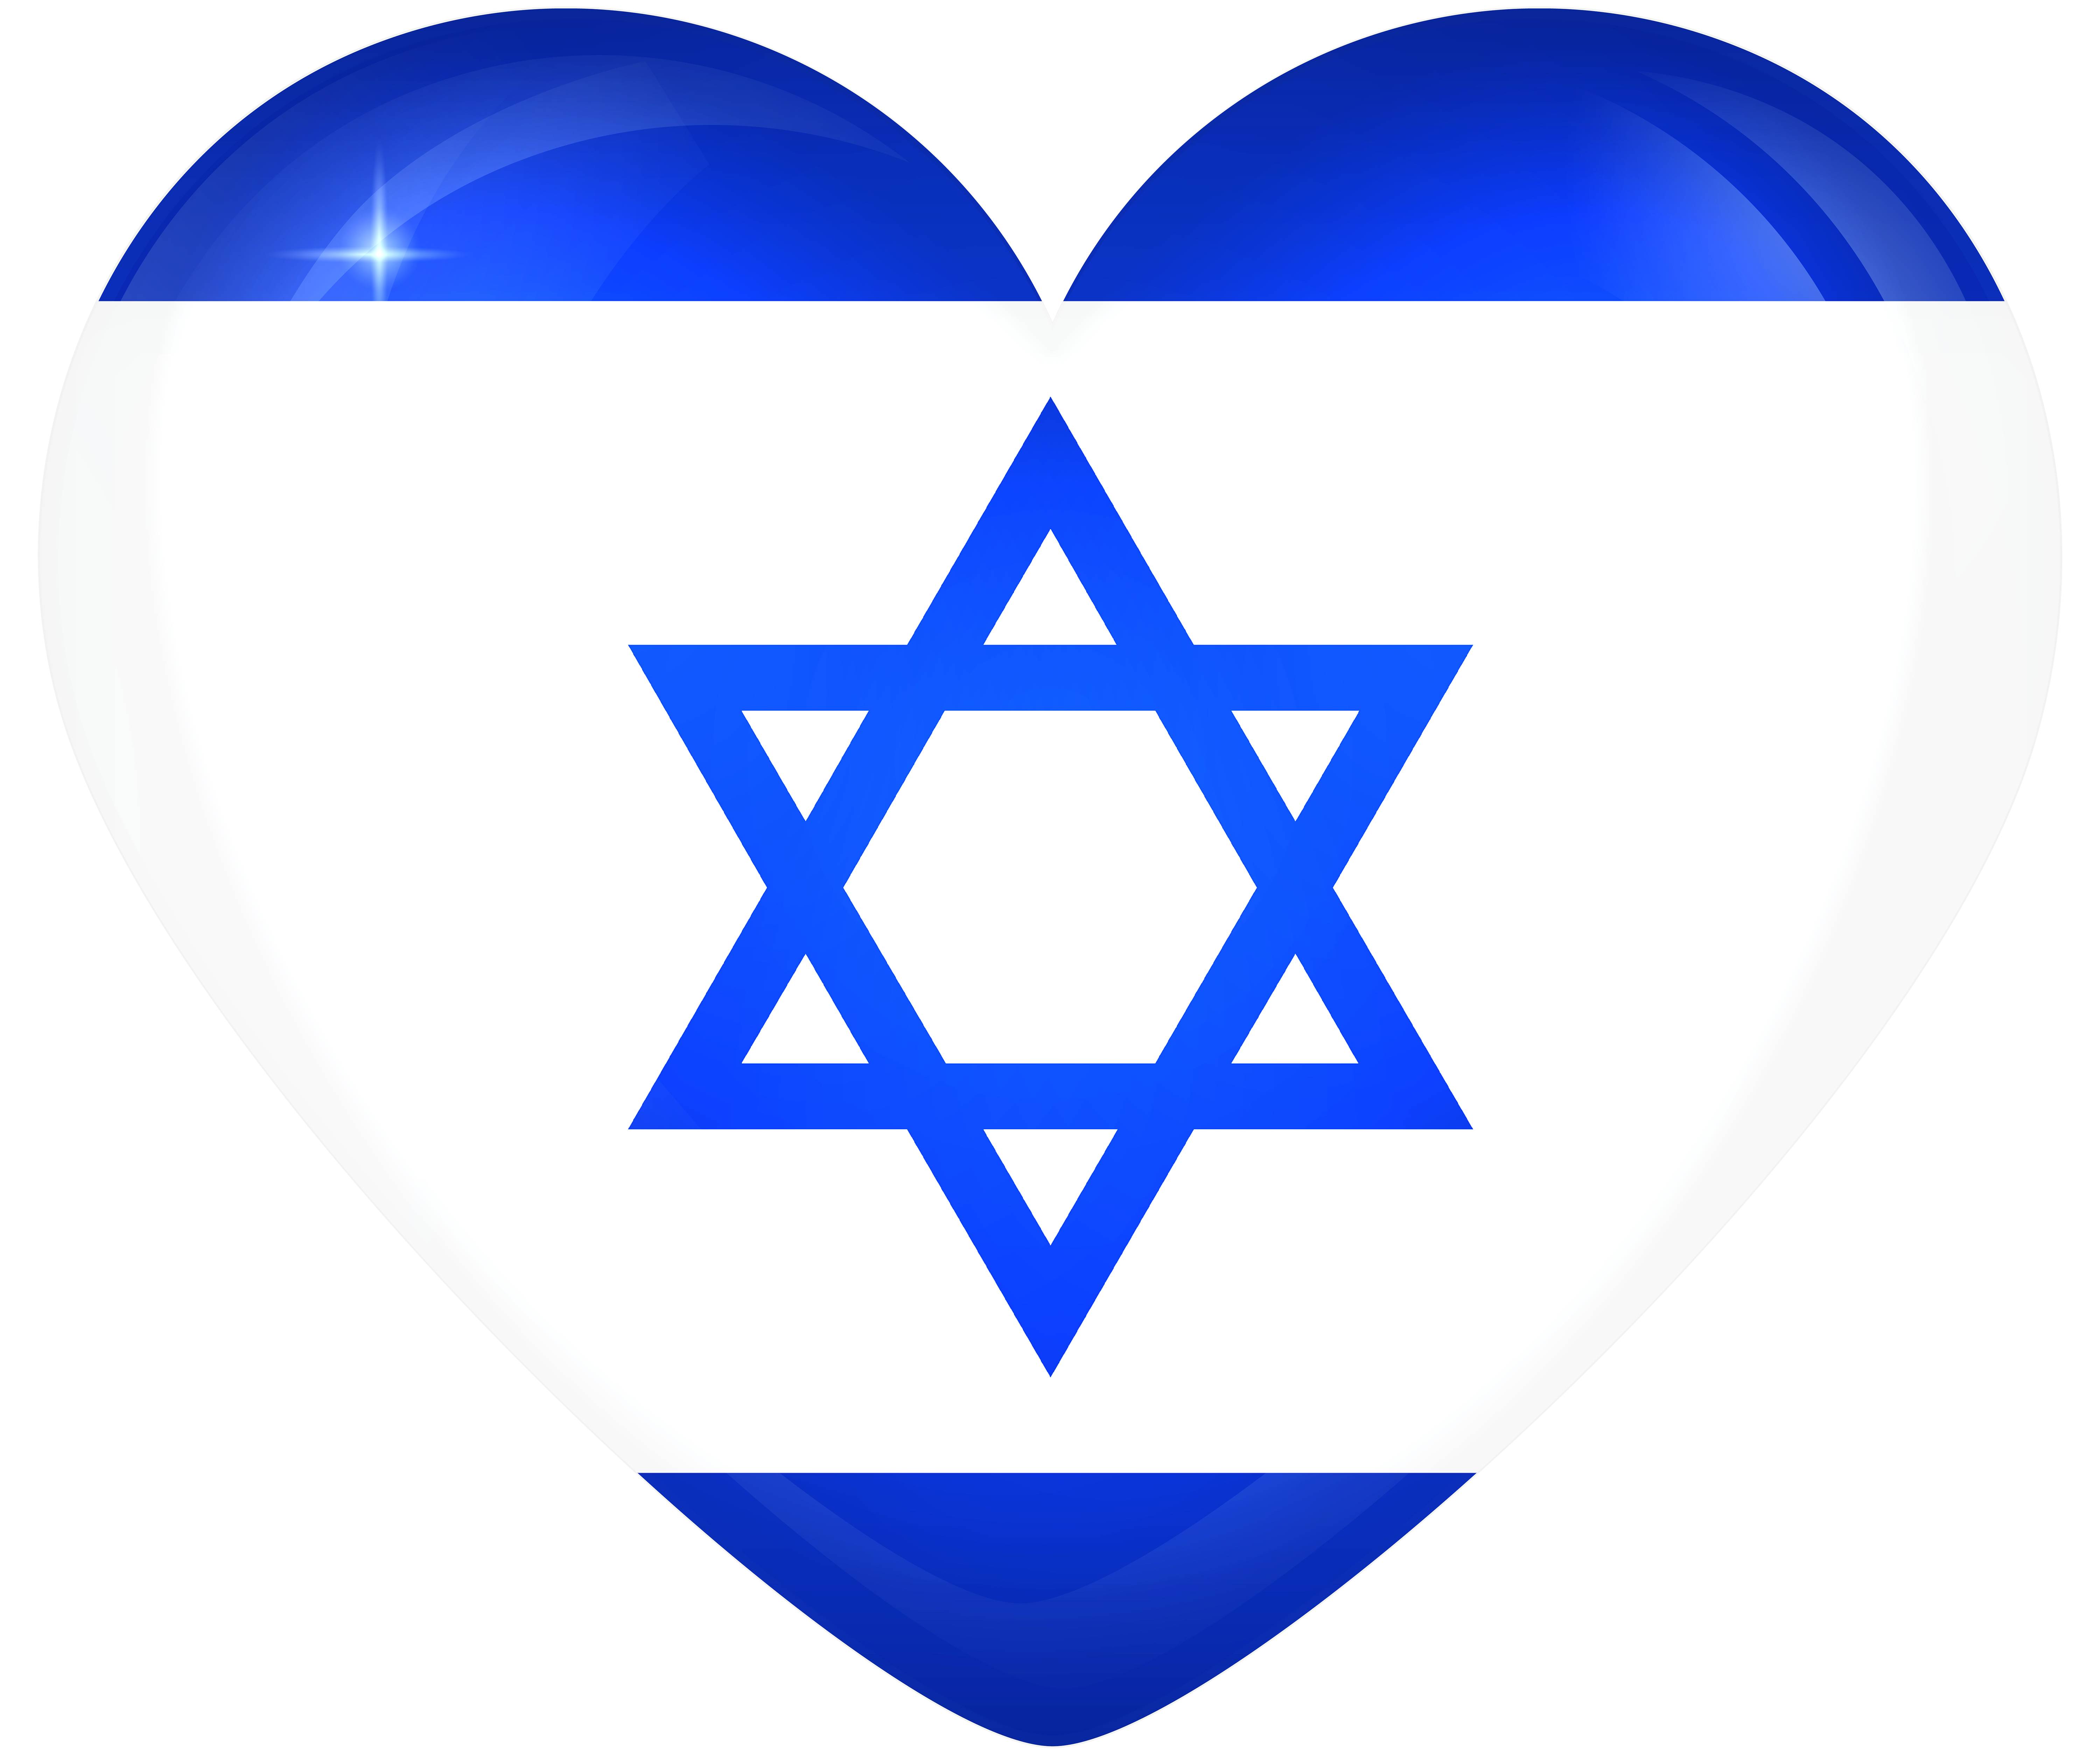 Israel Large Heart Flag Gallery Yopriceville High Quality Images And Transparent Png Free Clipart Flag Free Clip Art National Flag